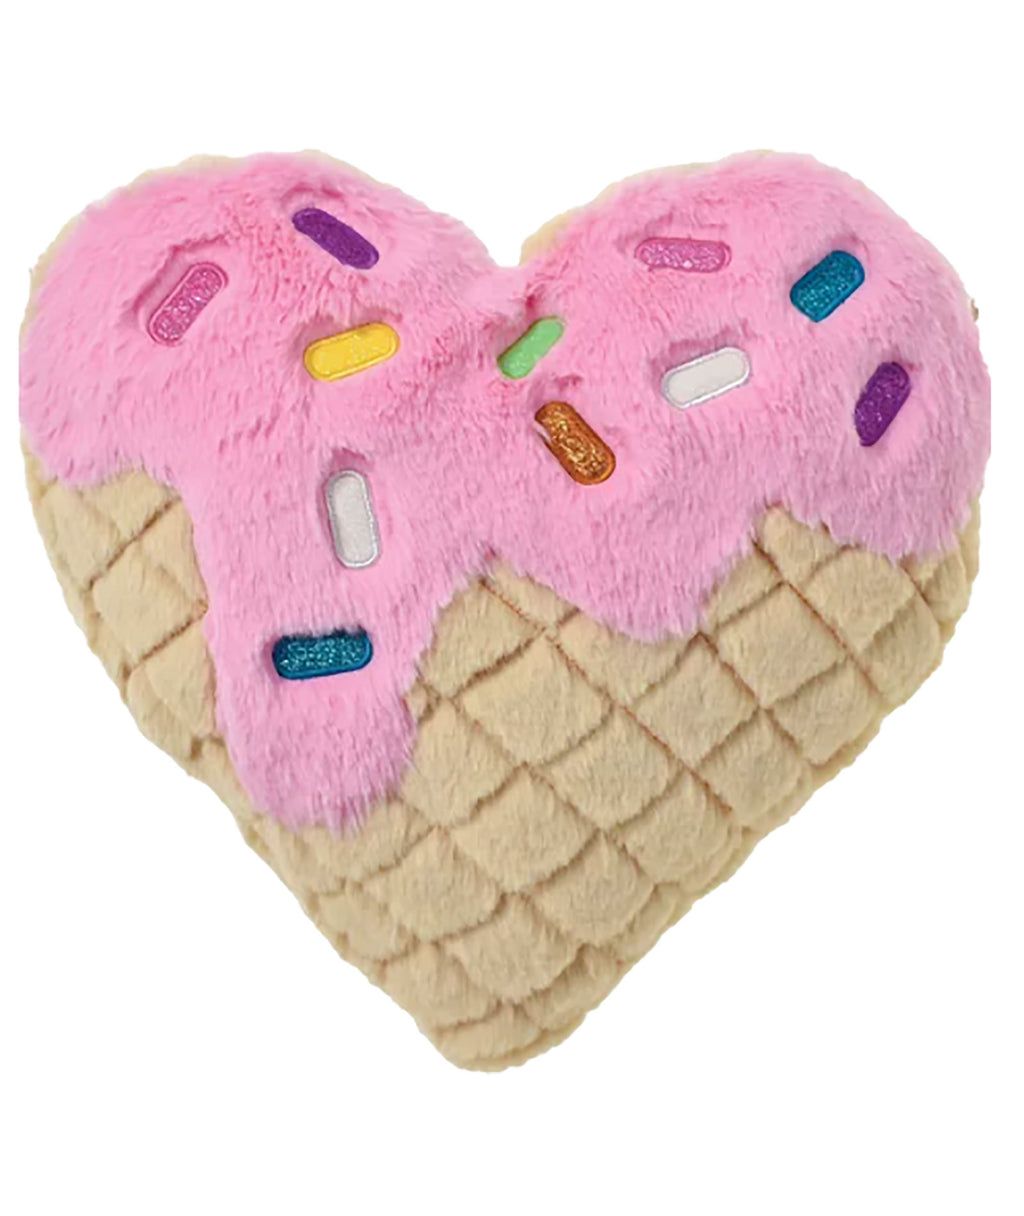 iScream Waffle Heart Pillow